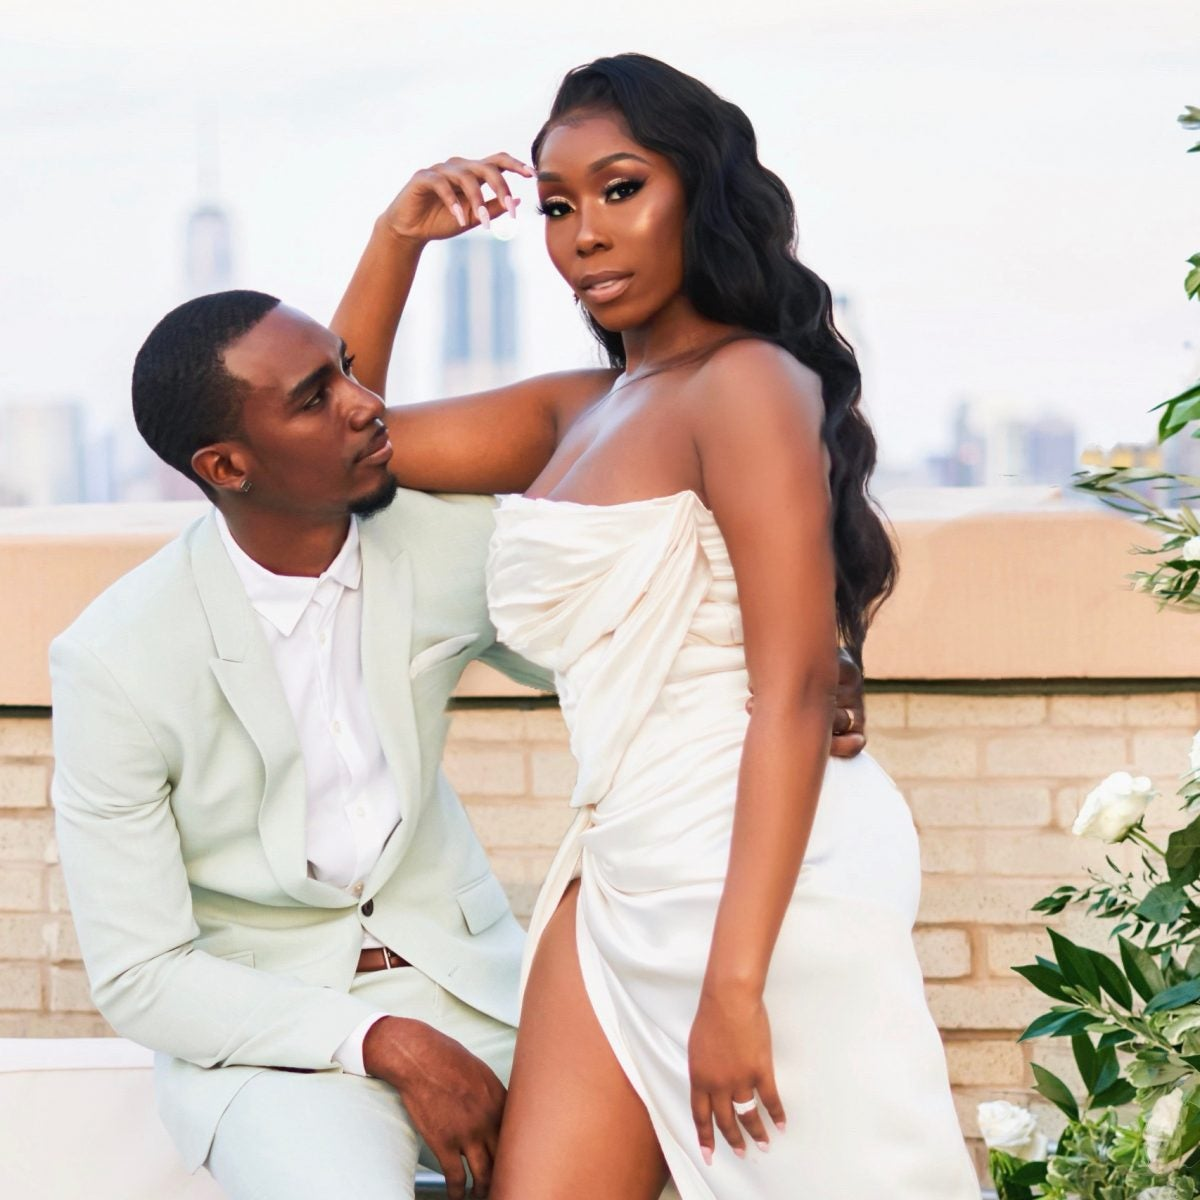 Bridal Bliss: Essie And Maurice's Rooftop Wedding Gave Us 'Black Love In The City'